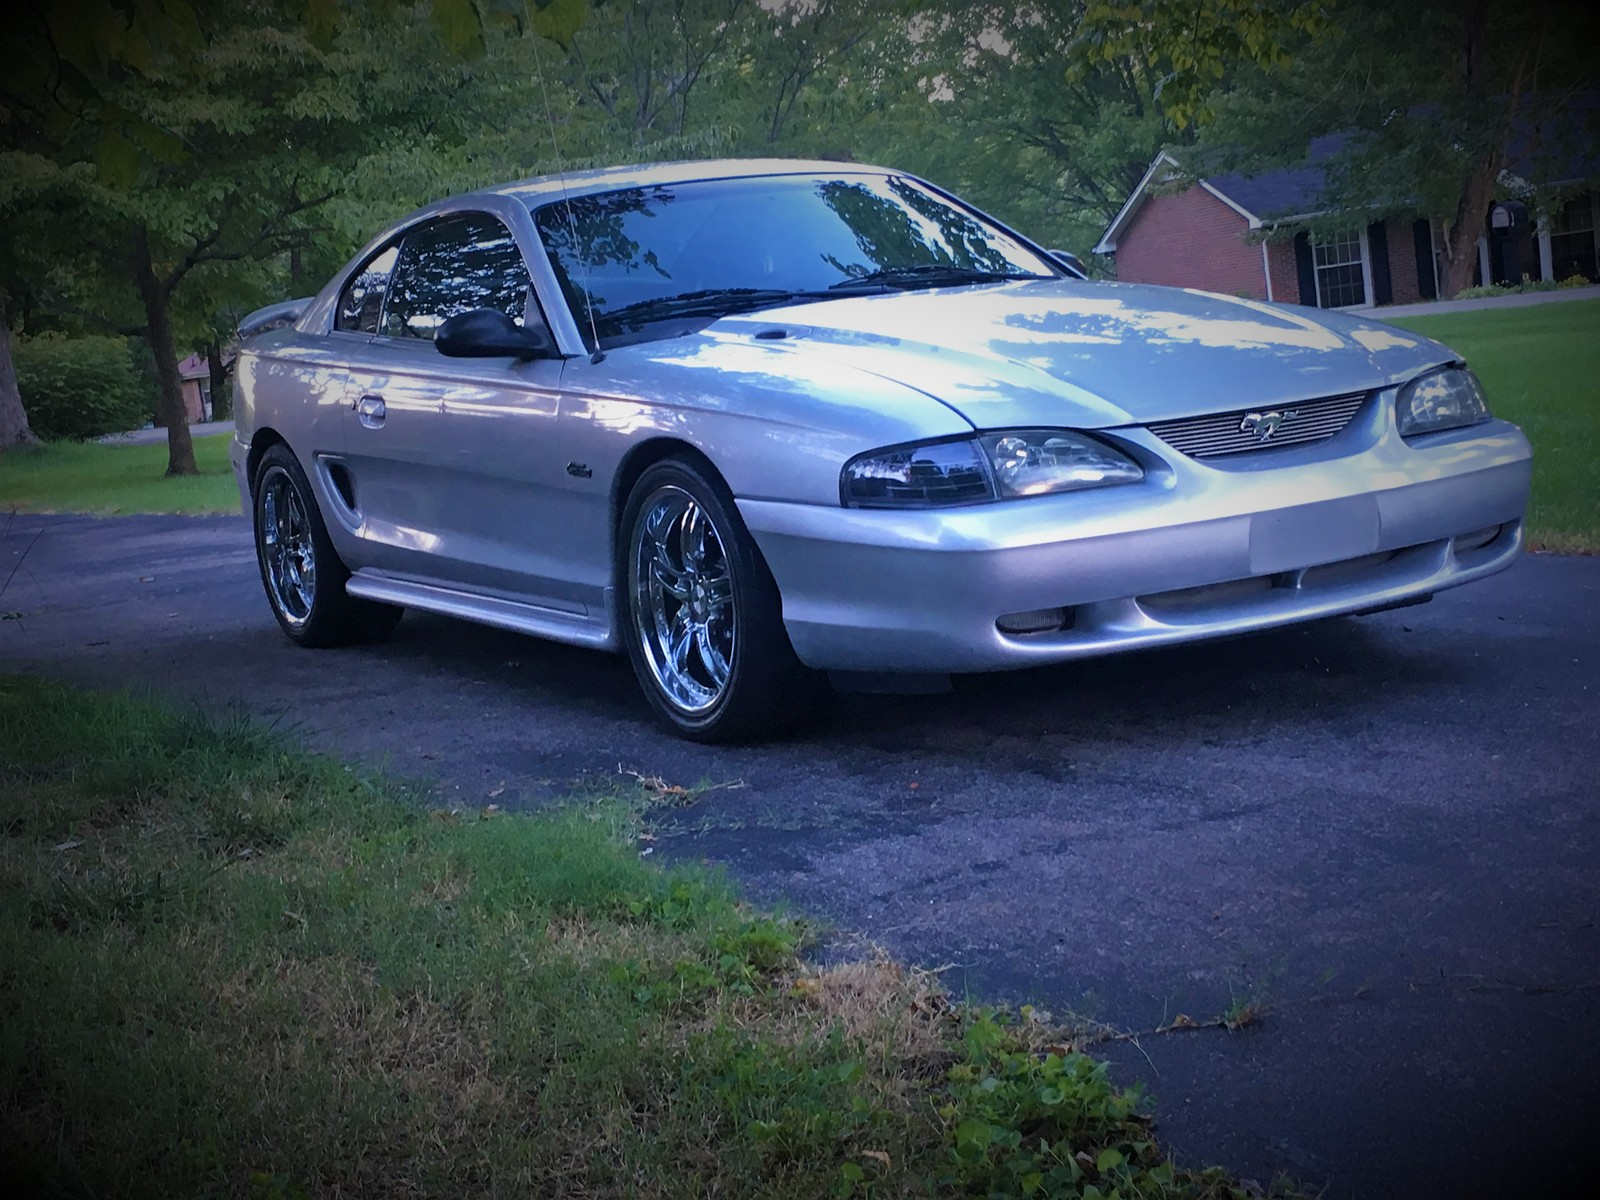 Metalic silver 1998 Ford Mustang GT